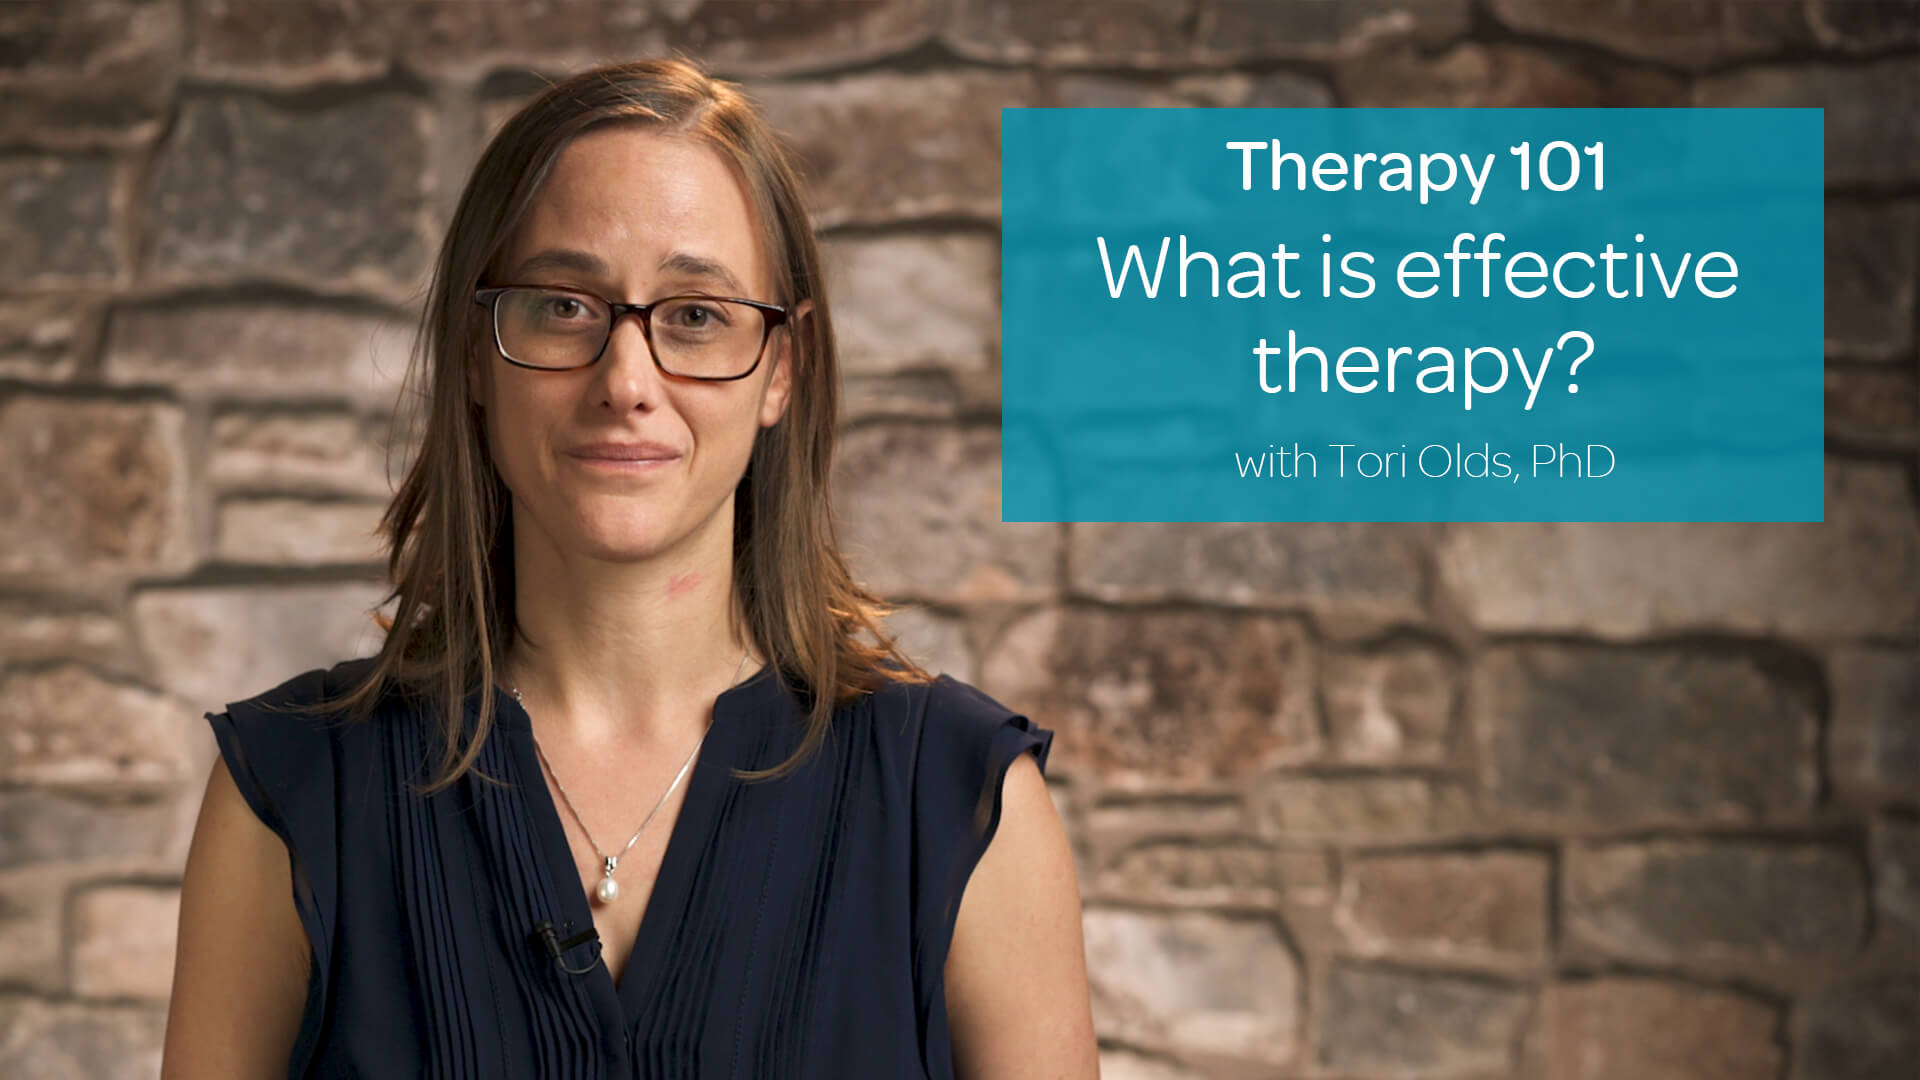 What is effective therapy?